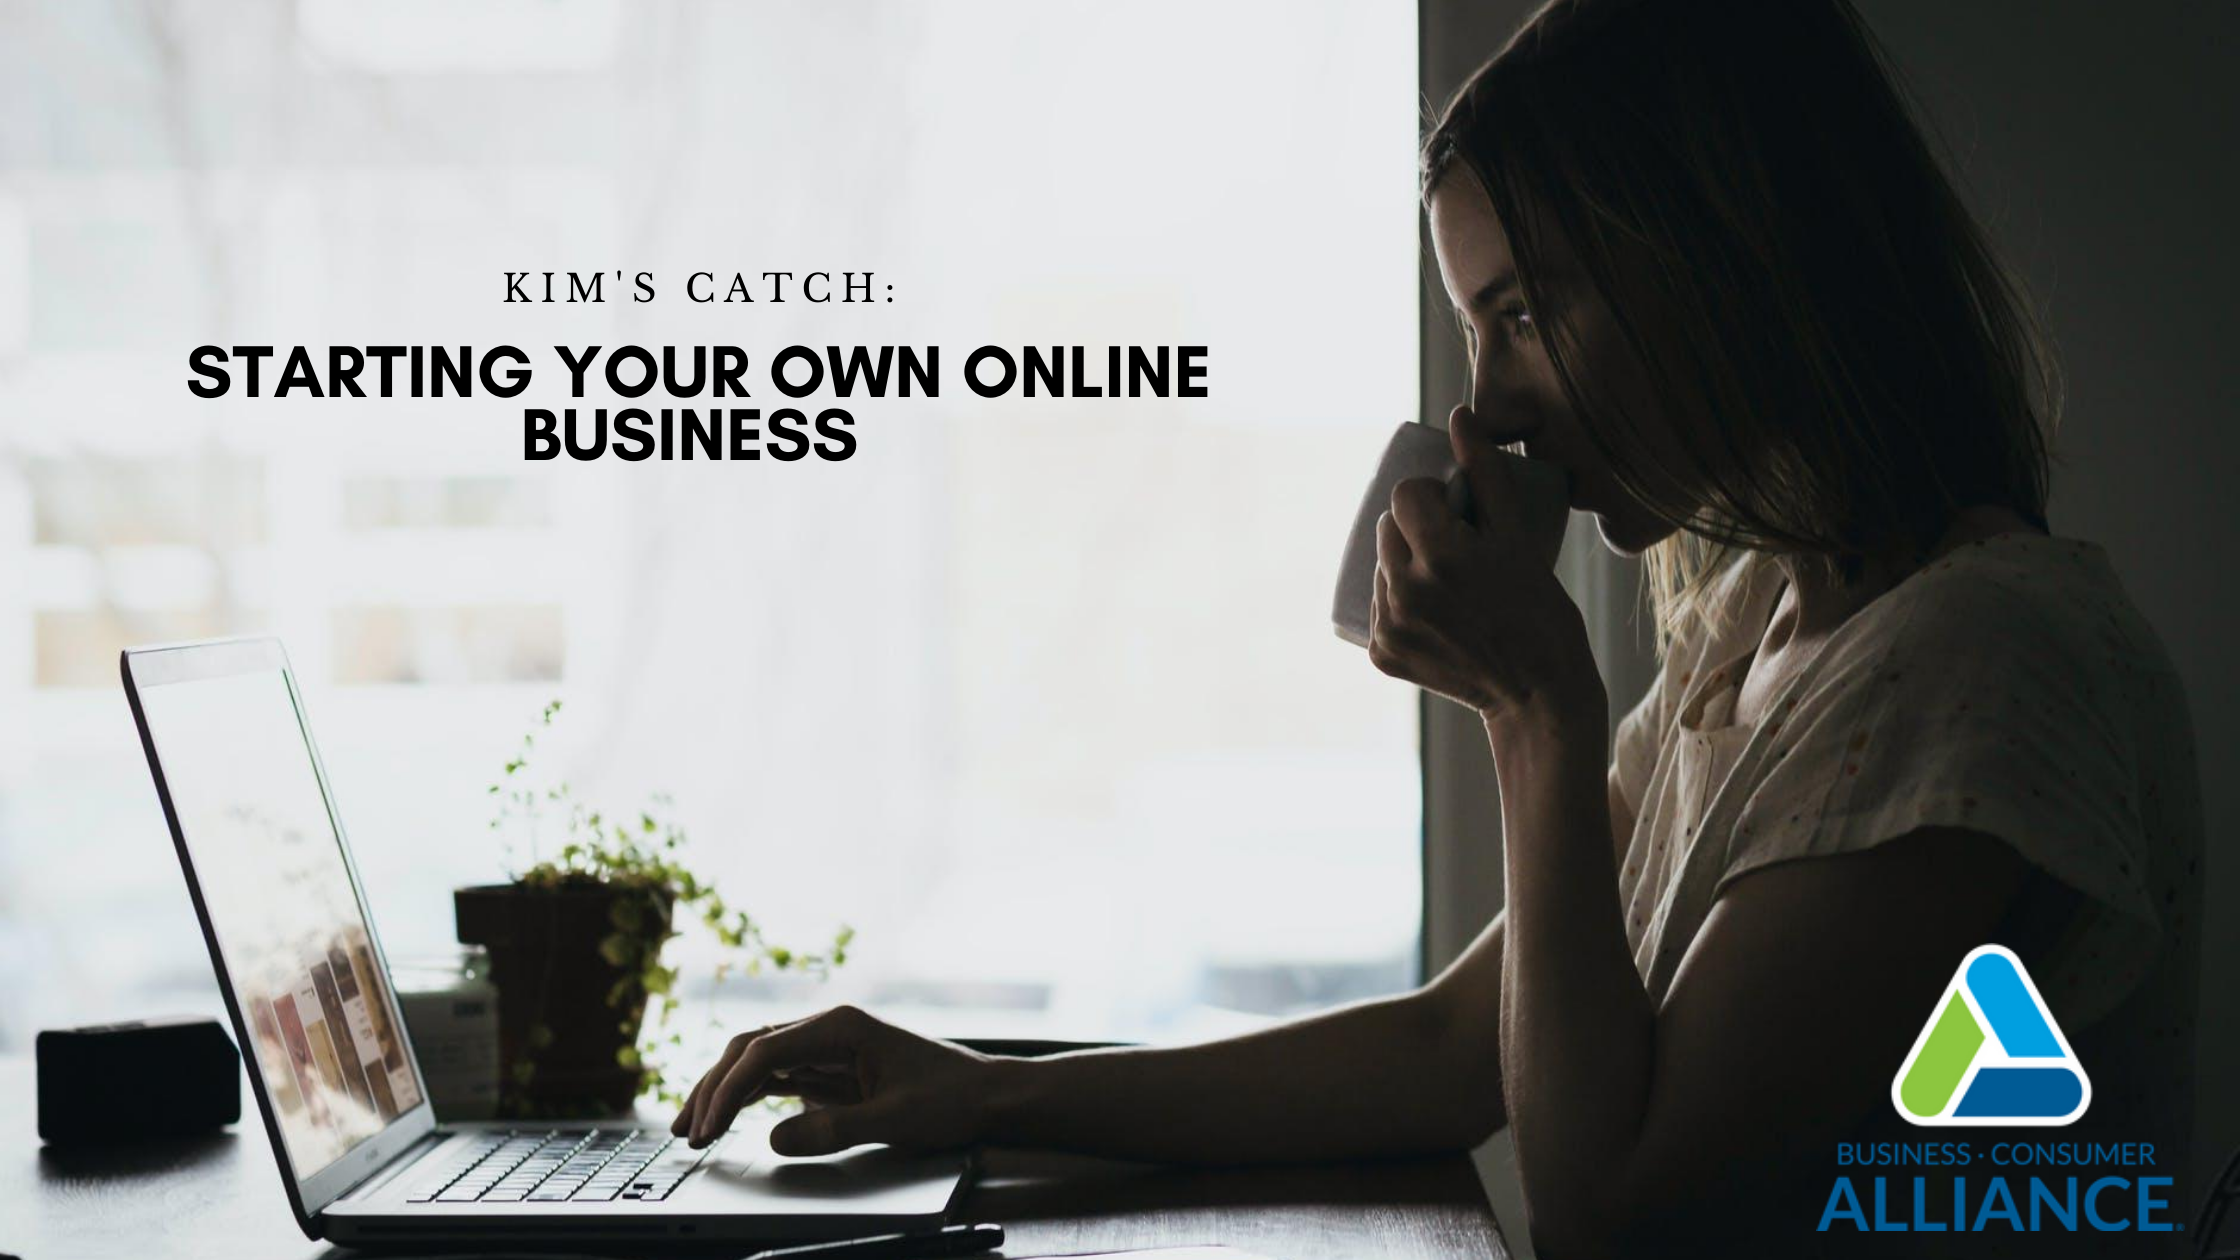 Kim's Catch: Starting Your Own Online Business